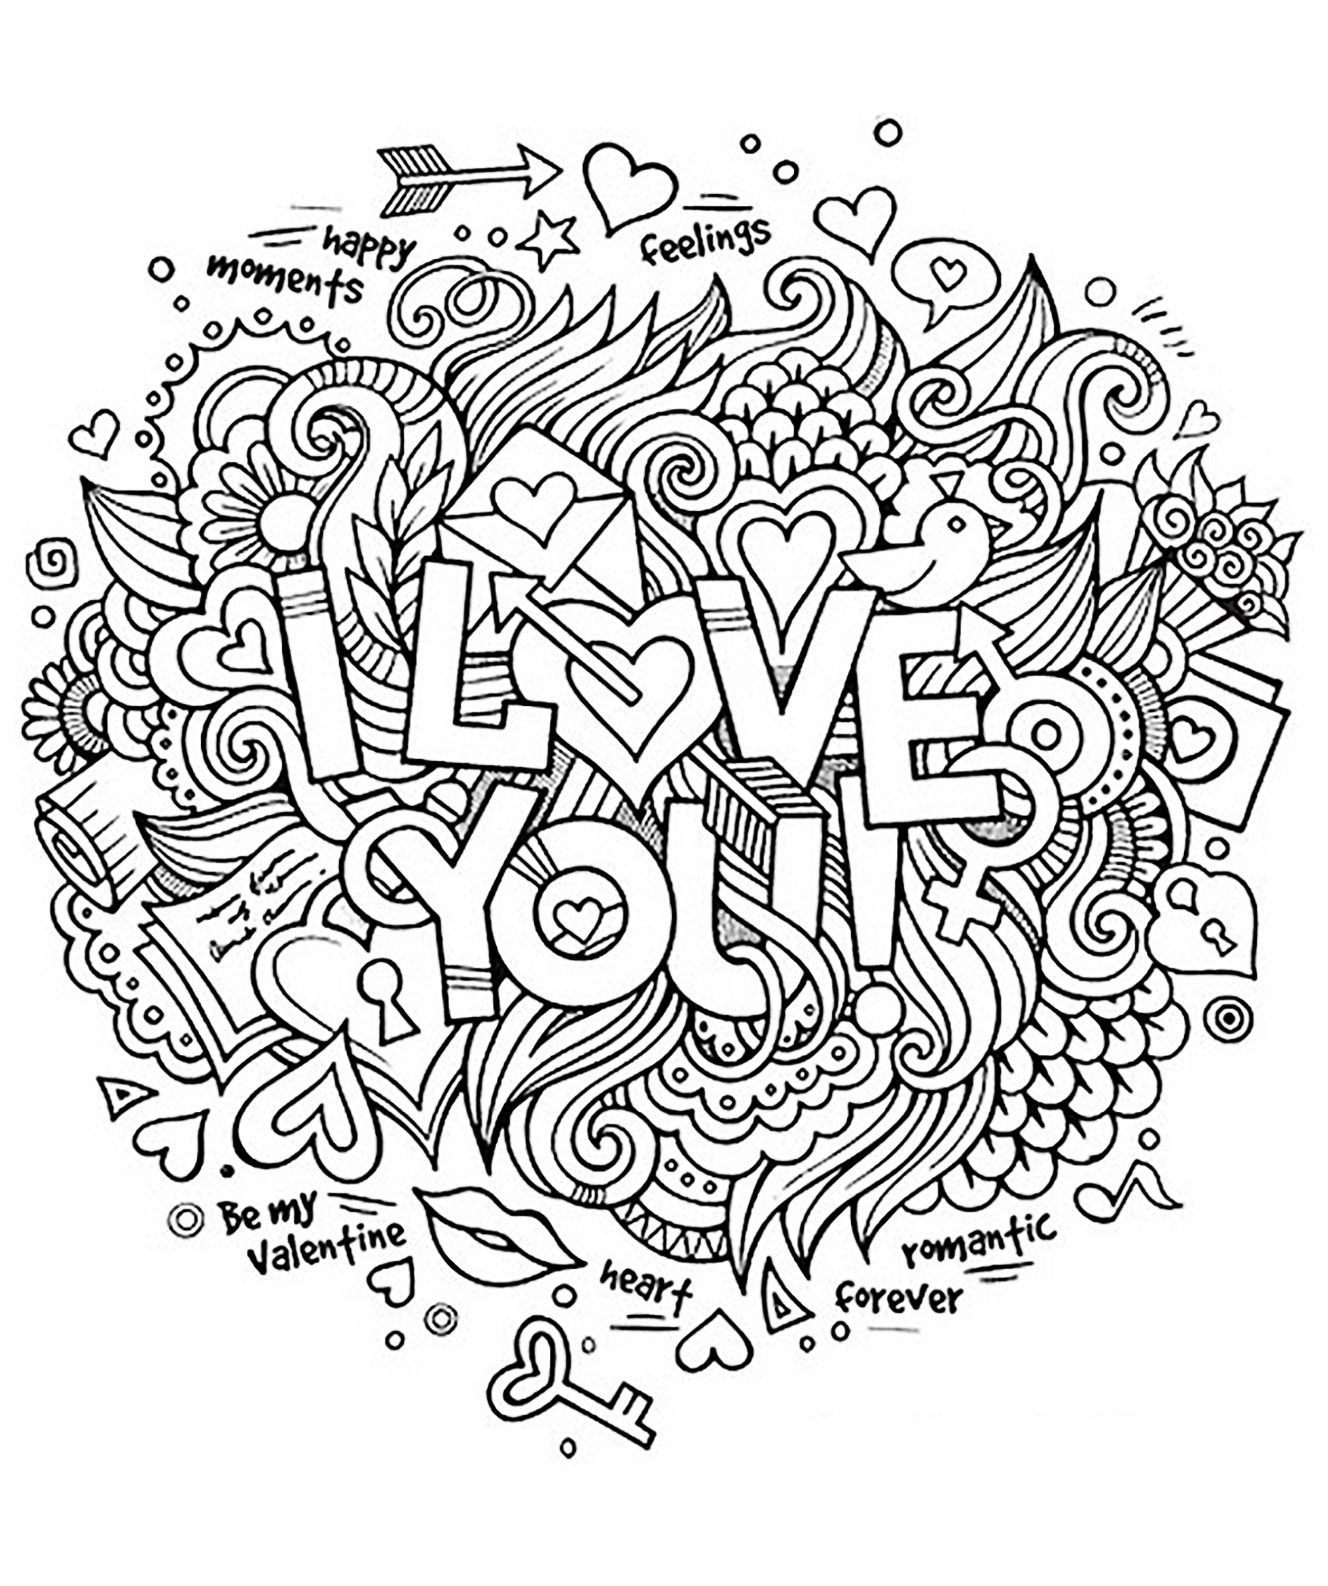 I love you - Quotes Adult Coloring Pages